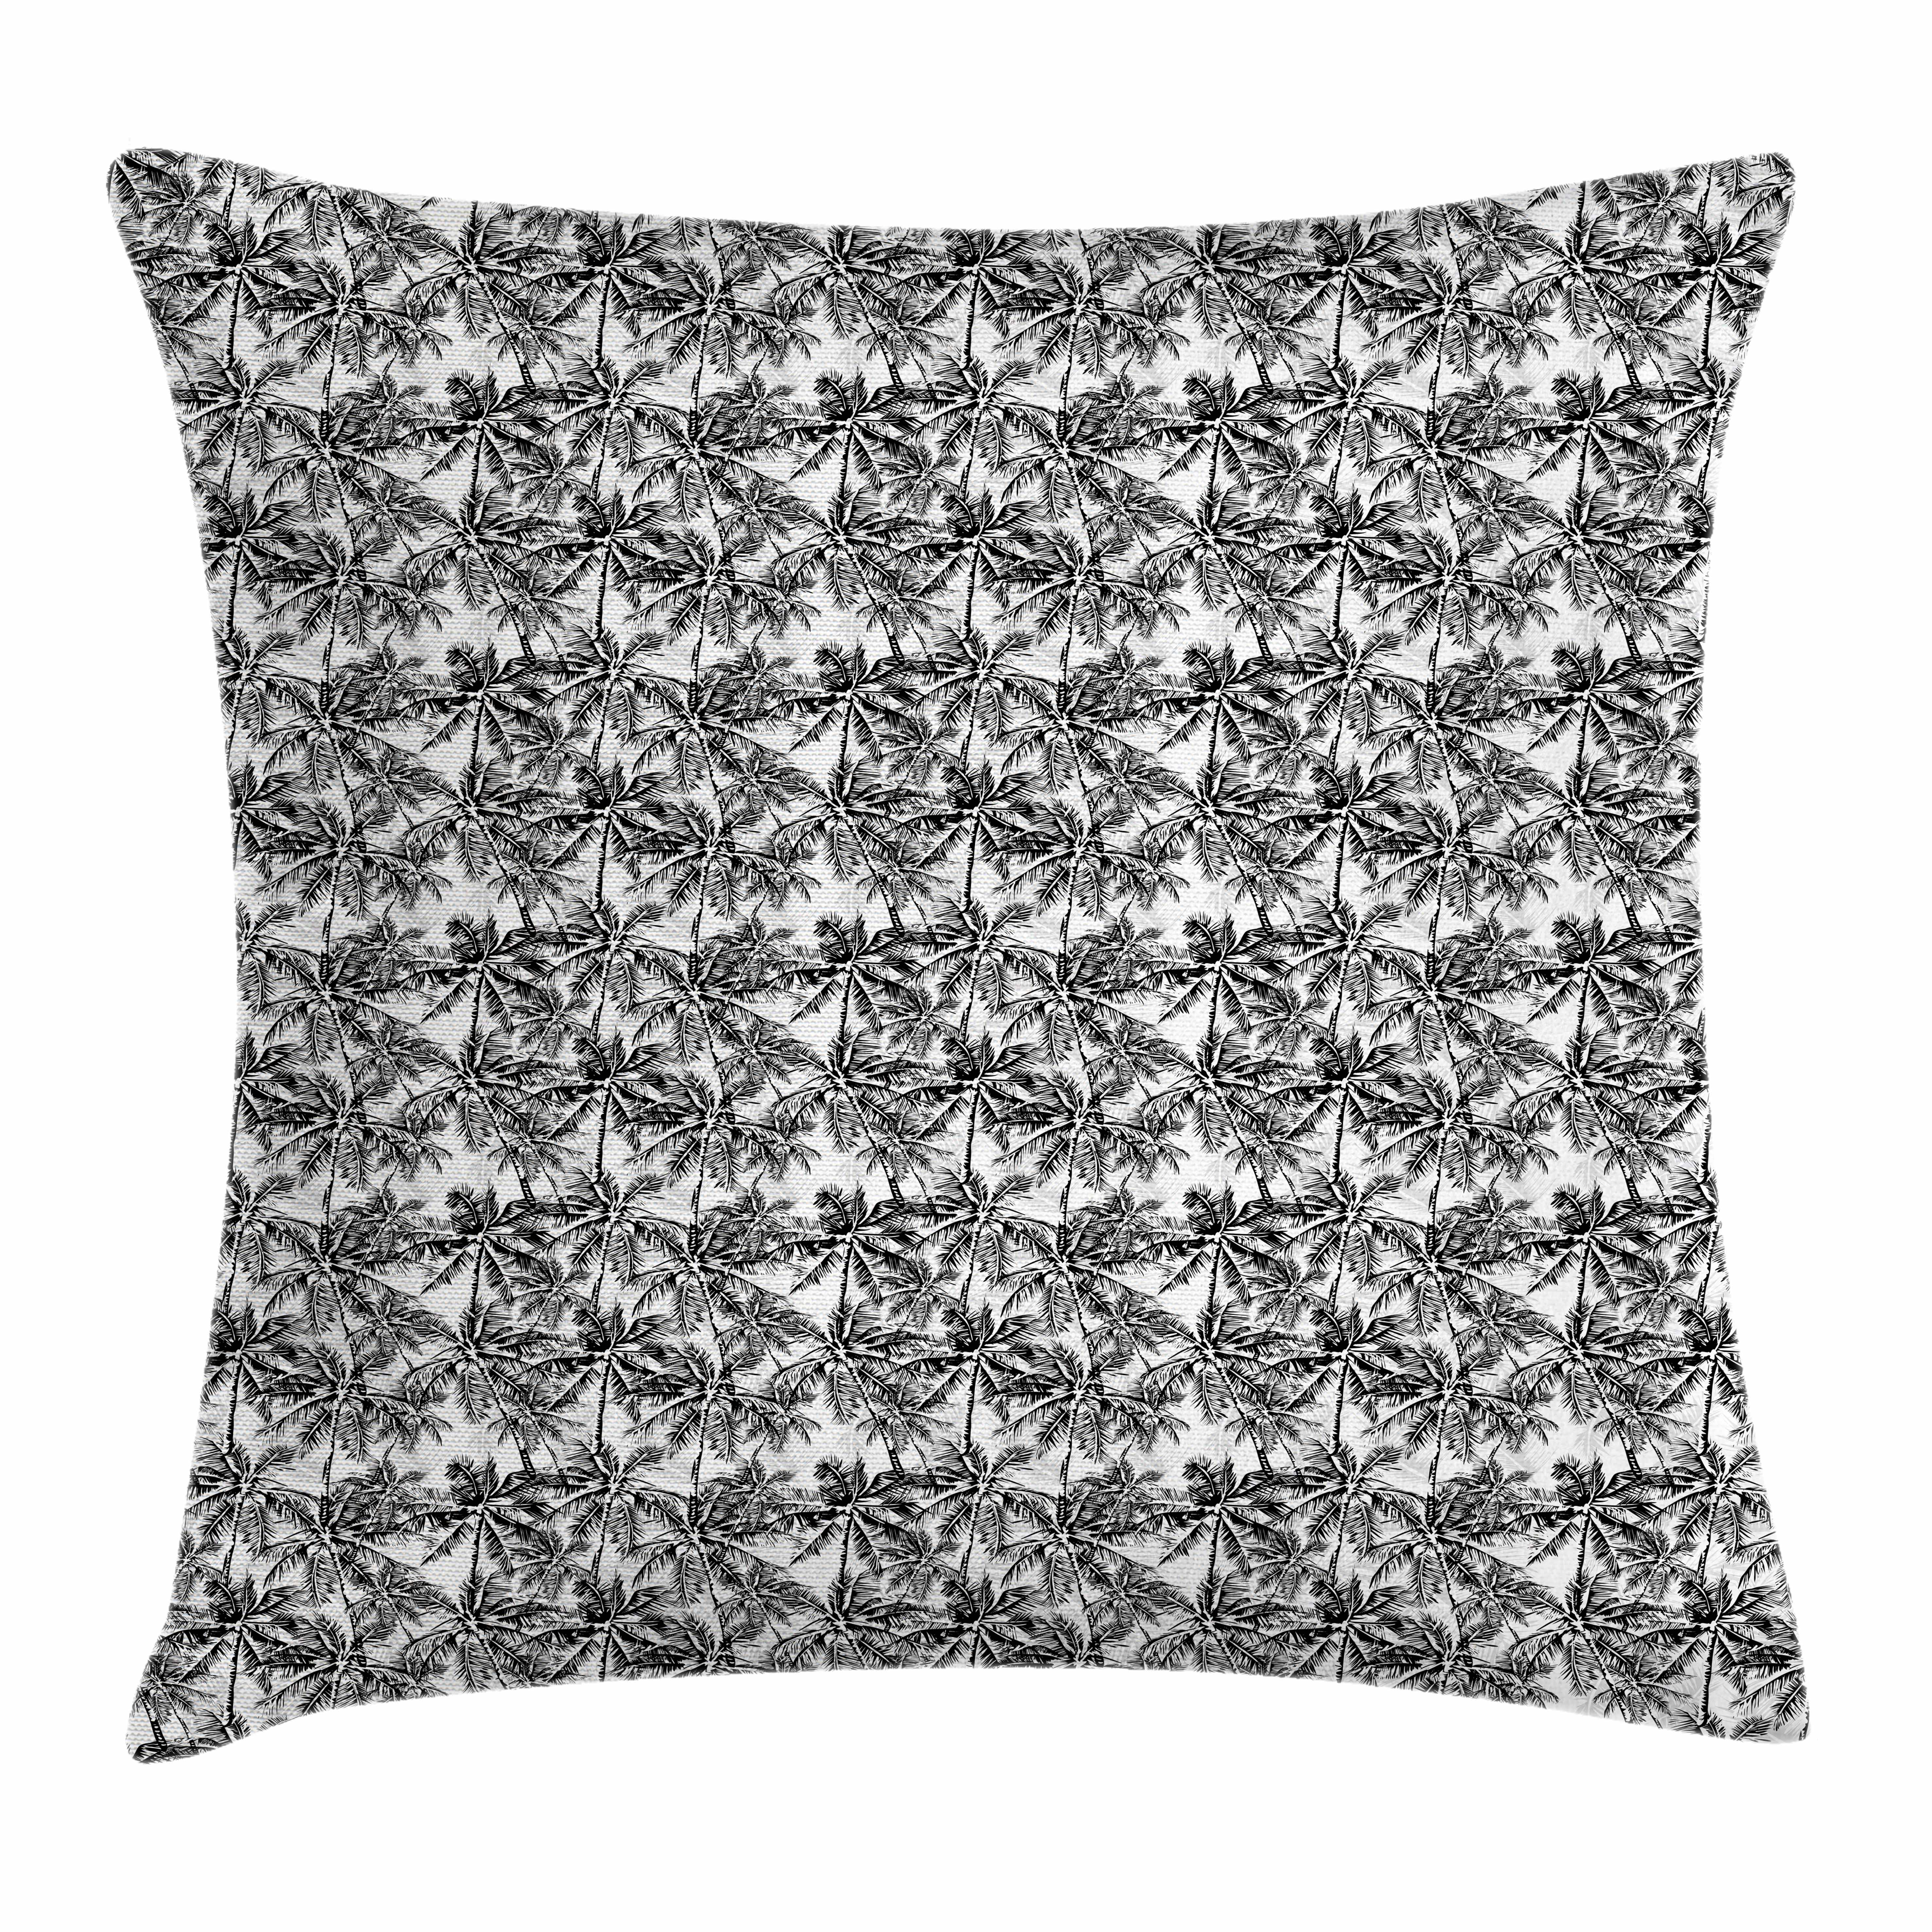 Palm Tree Throw Pillow Cushion Cover, Monochrome Woodland Pattern Depicting Black Palm Tree on a White Background, Decorative Square Accent Pillow Case, 24 X 24 Inches, Black White, by Ambesonne